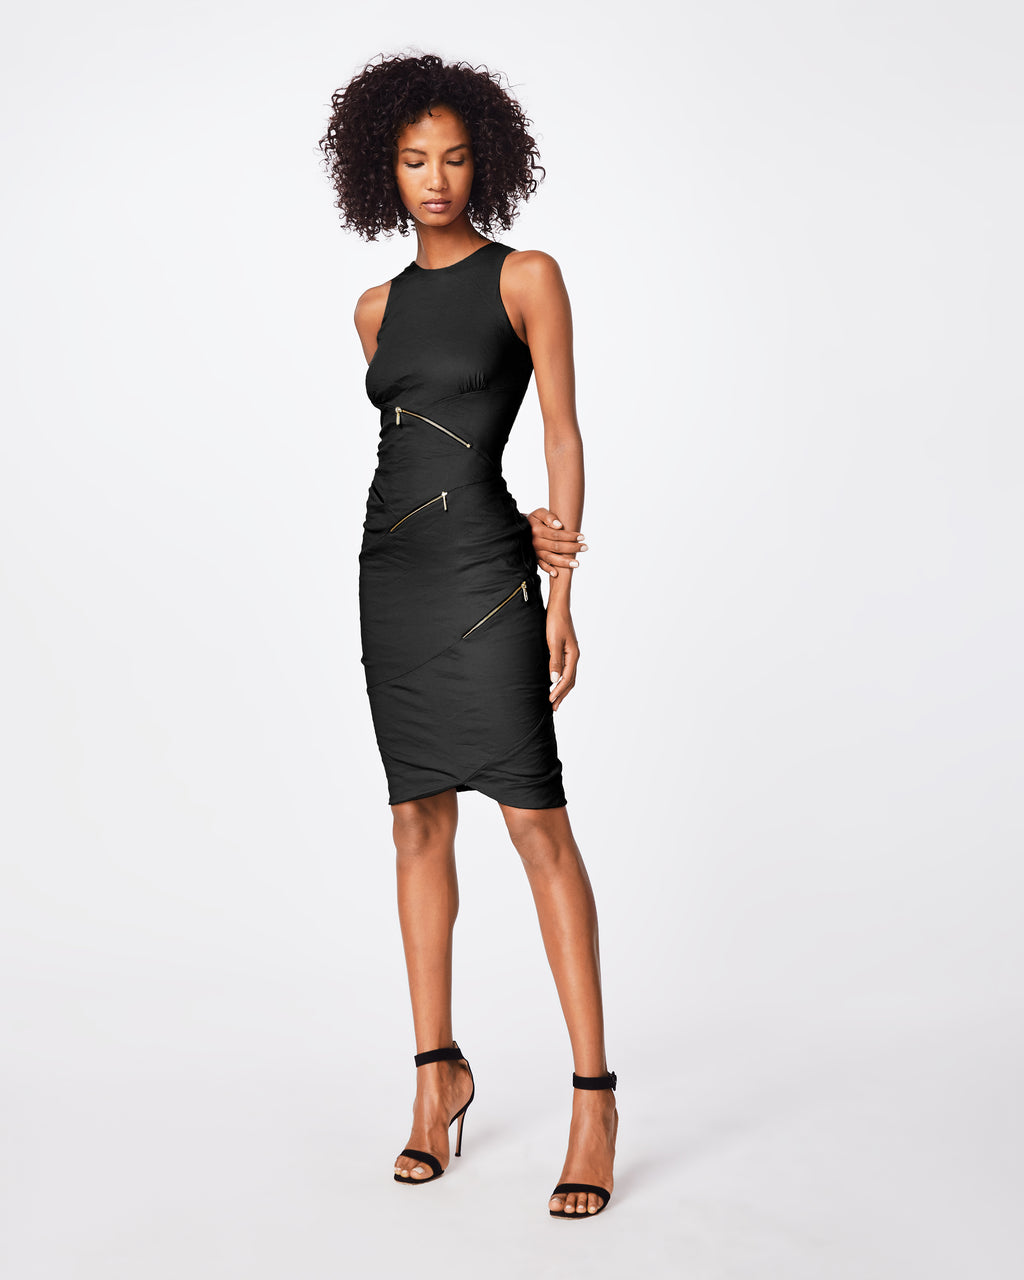 CA10254 - SOLID COTTON METAL ZIPPER DRESS - dresses - short - In our iconic cotton metal, this tucked dress features exposed zippers for a little something extra kind of look. The high neckline and fitted bodice to the knee make it a flattering fit.